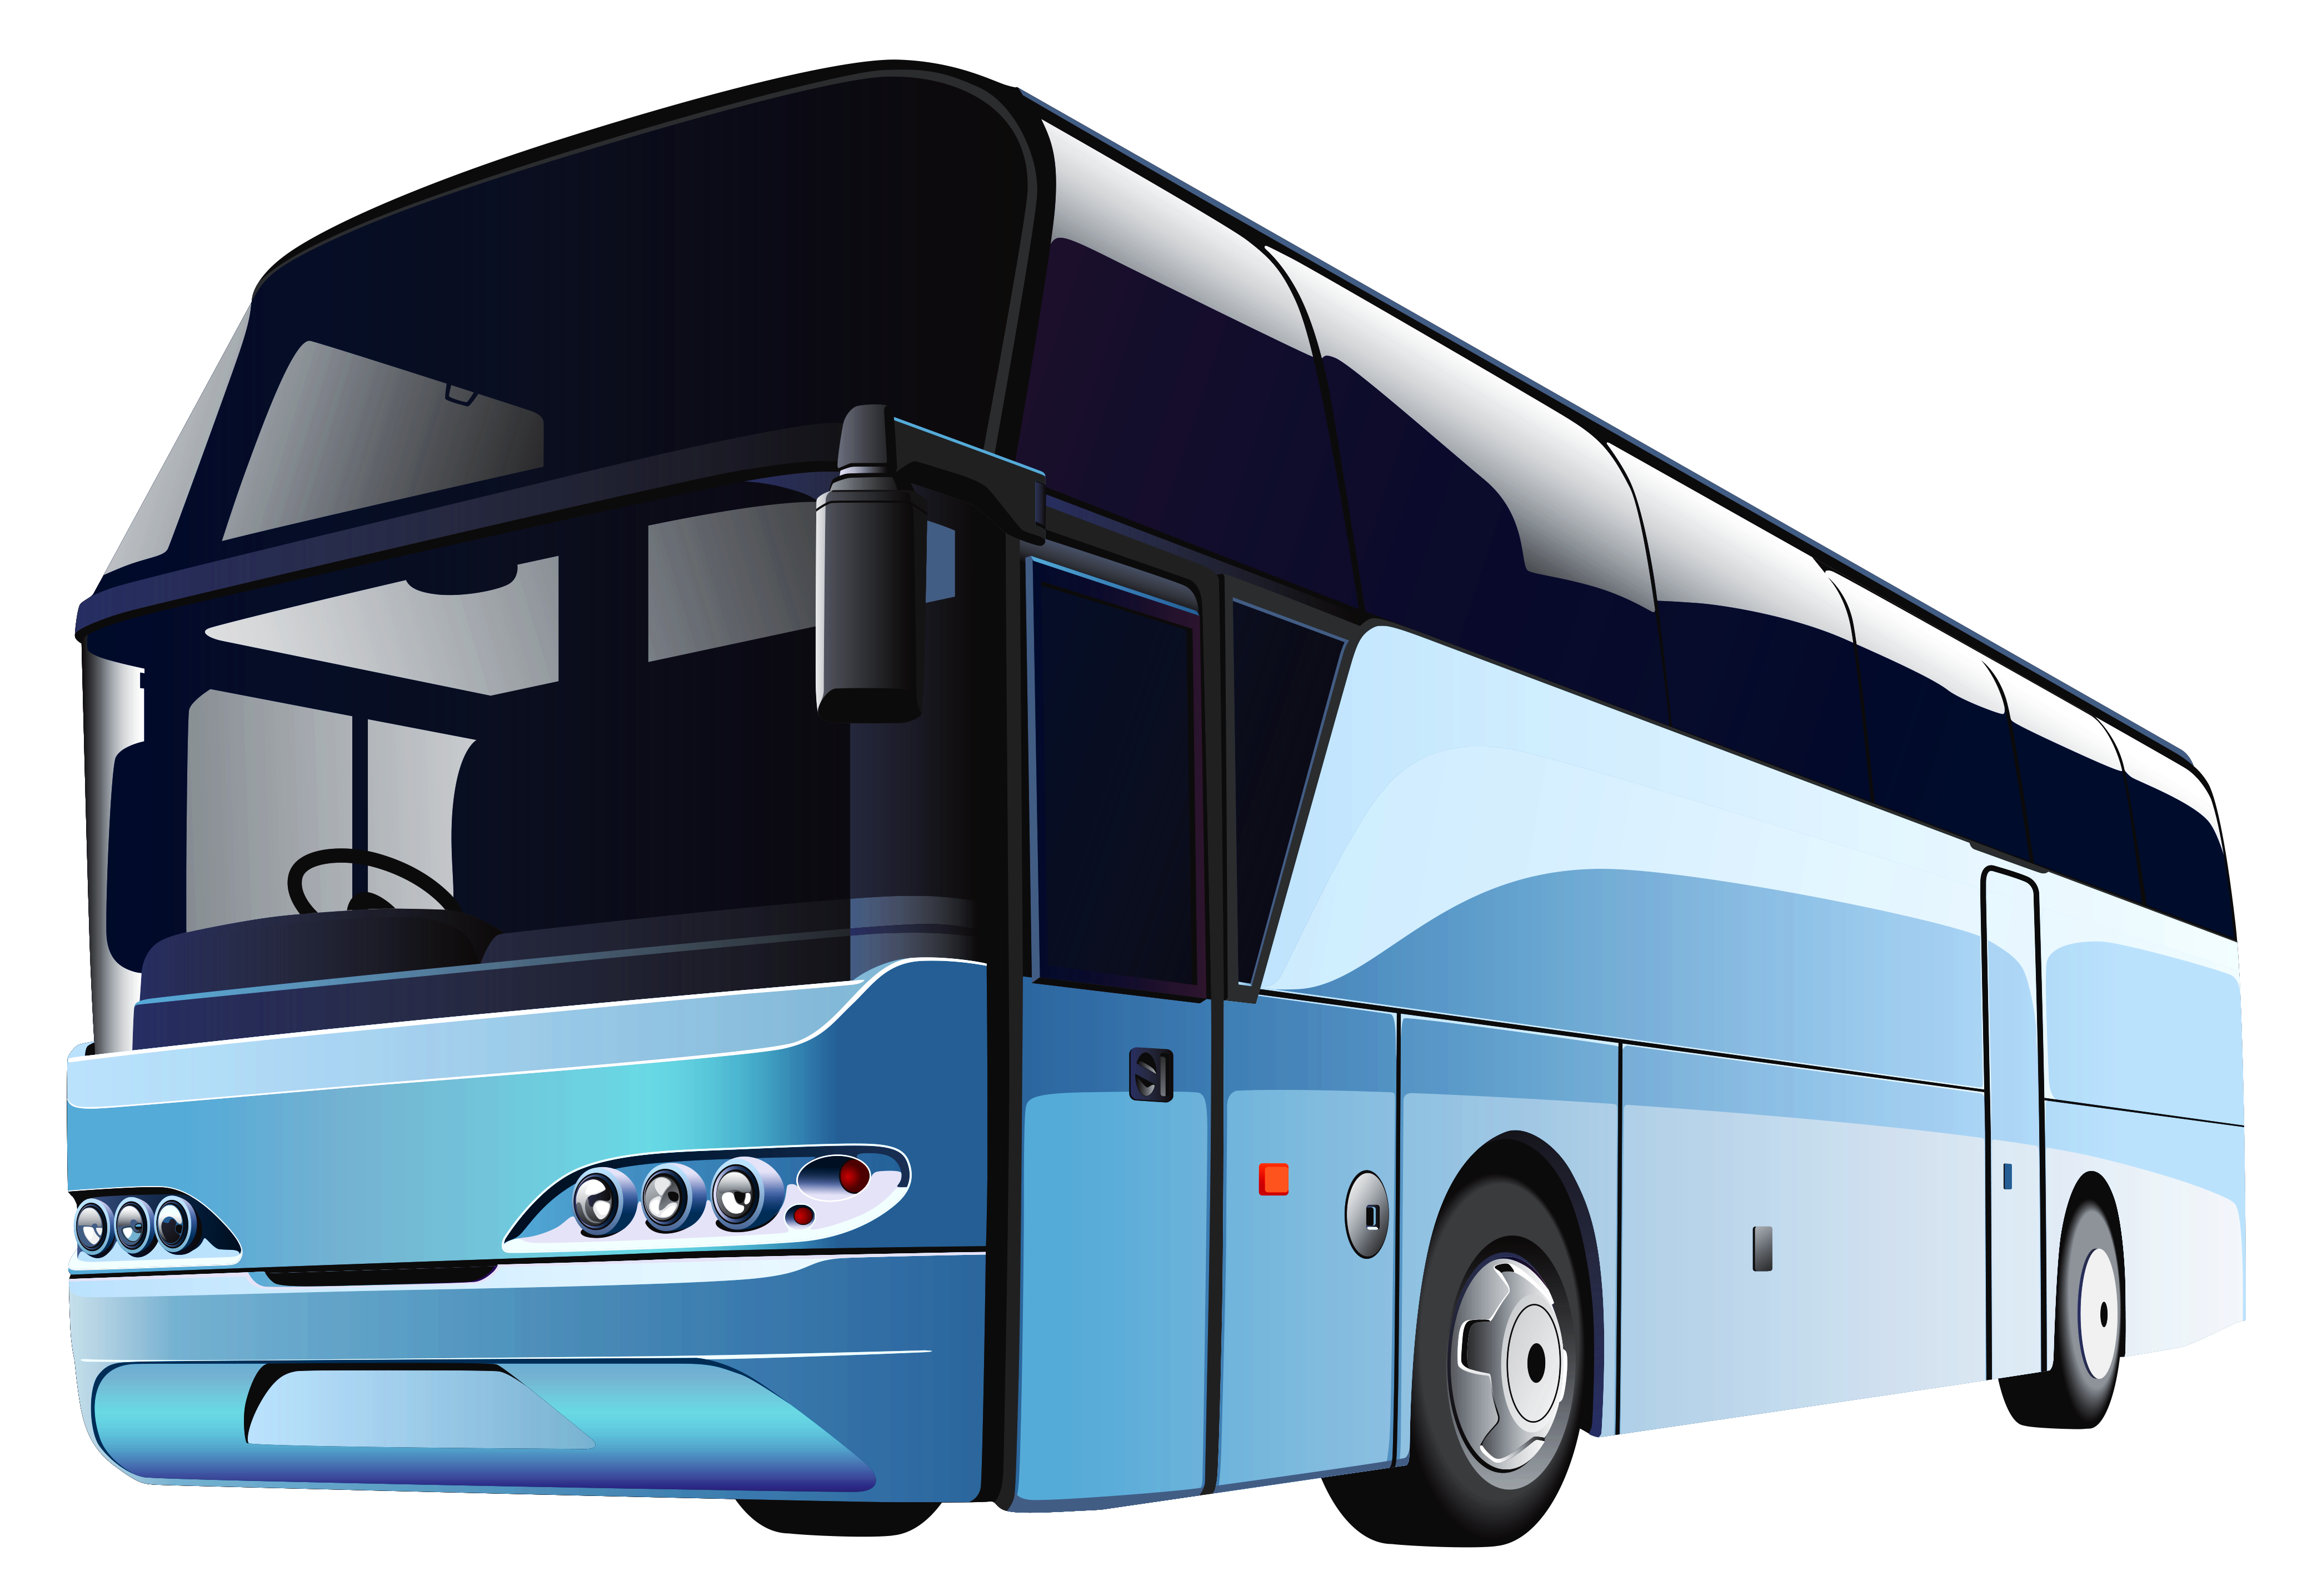 Tour bus clipart 8 » Clipart Station.